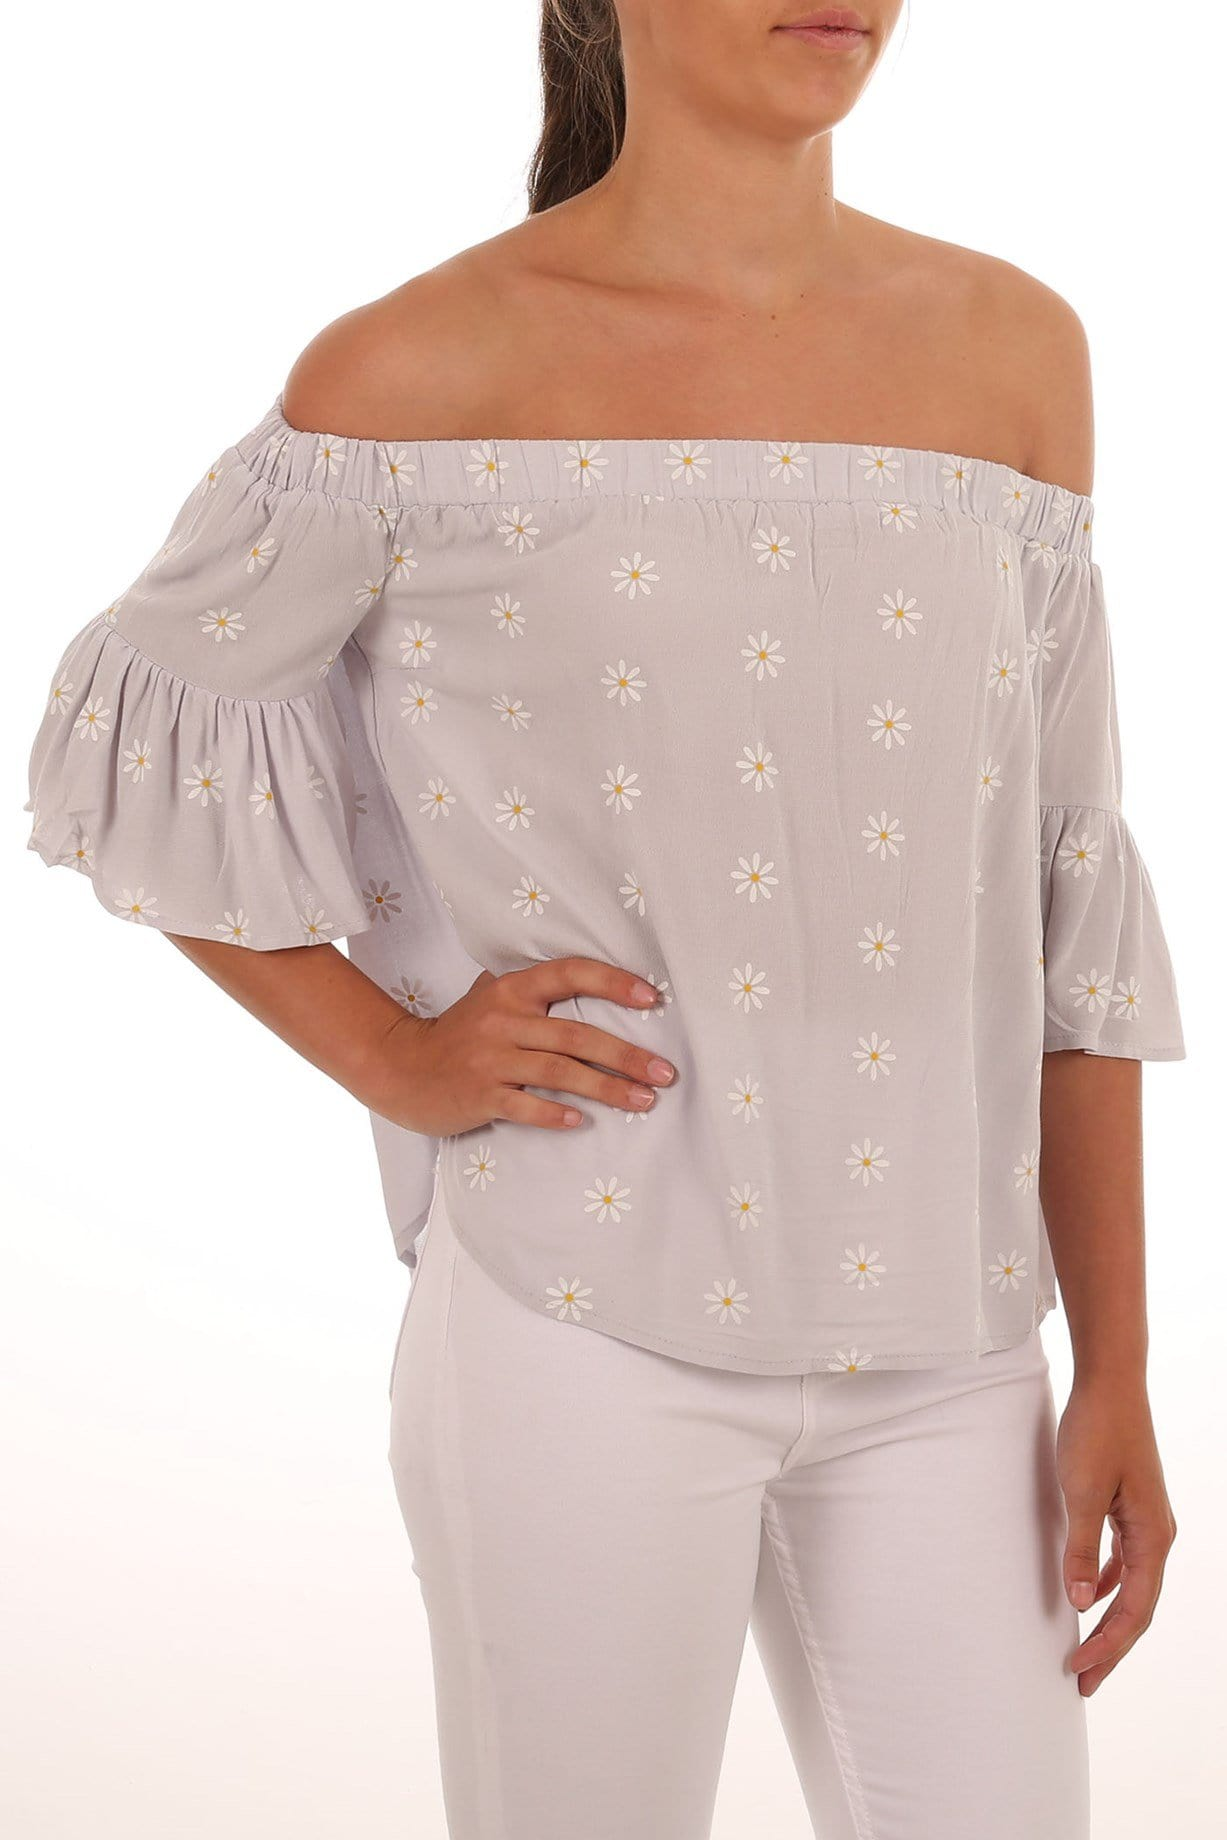 Daisy Chain Off Shoulder Top Daisy Chain Print